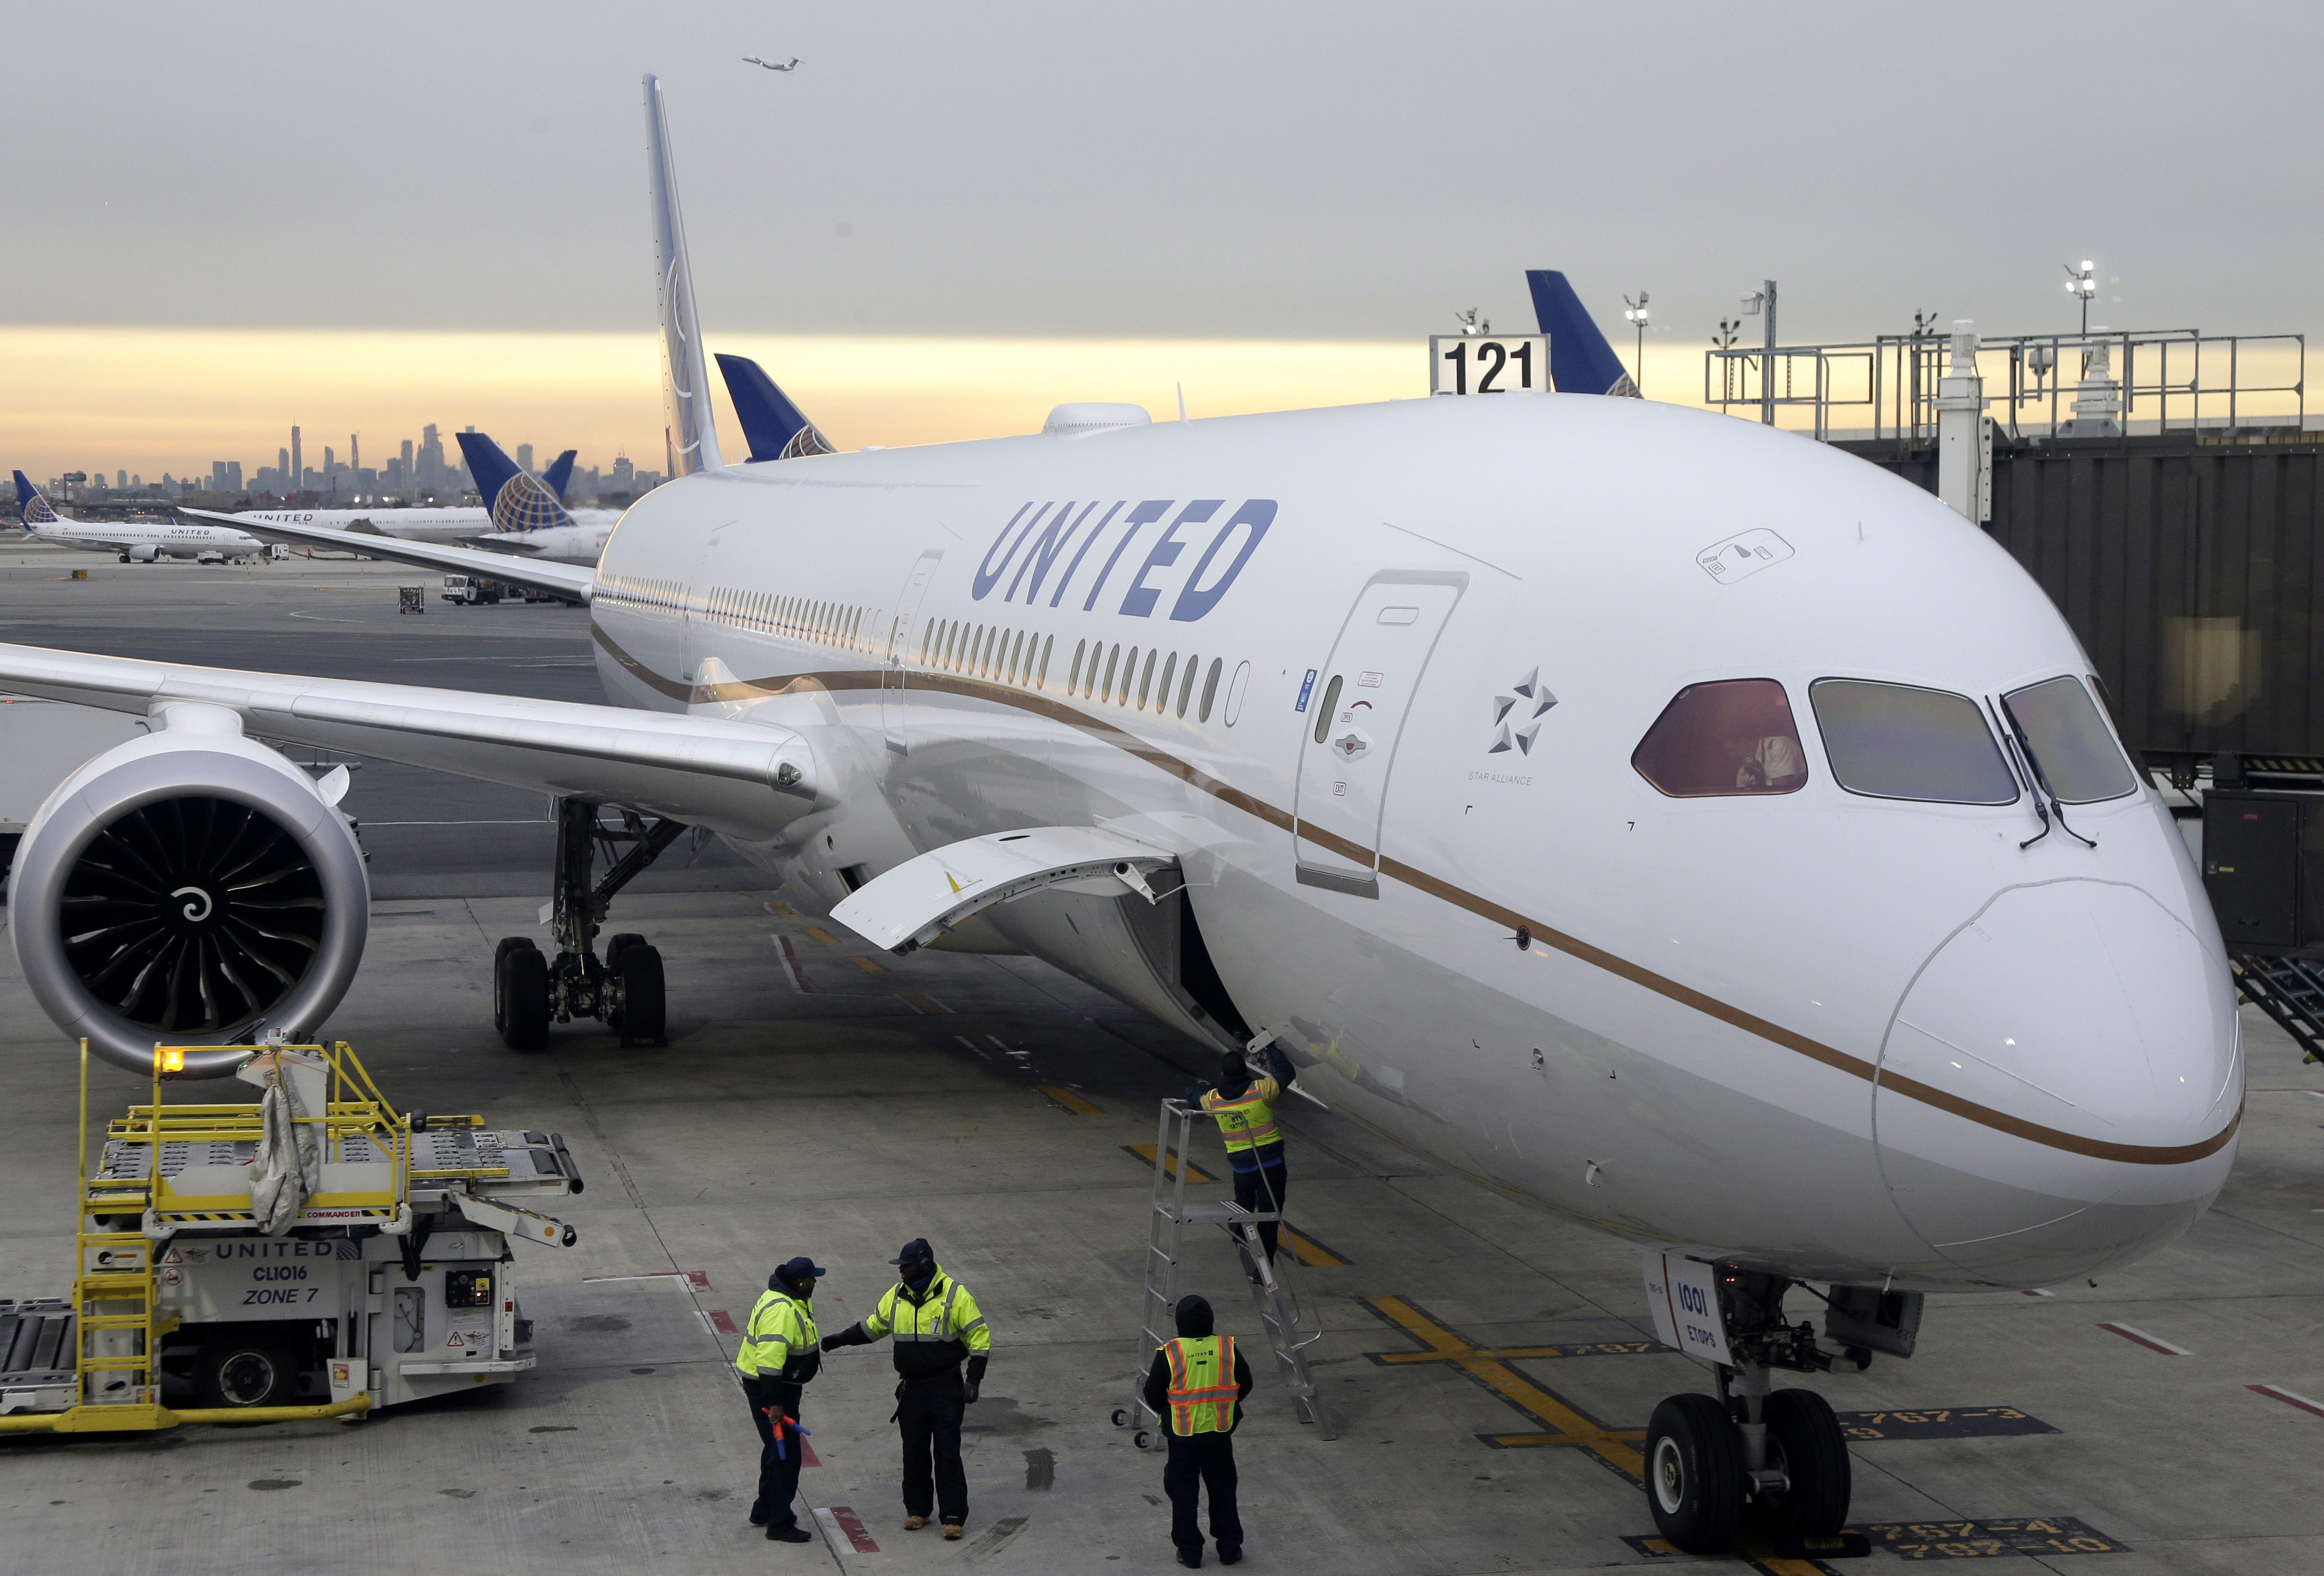 Newark Airport reopens after United flight blows two tires during emergency landing